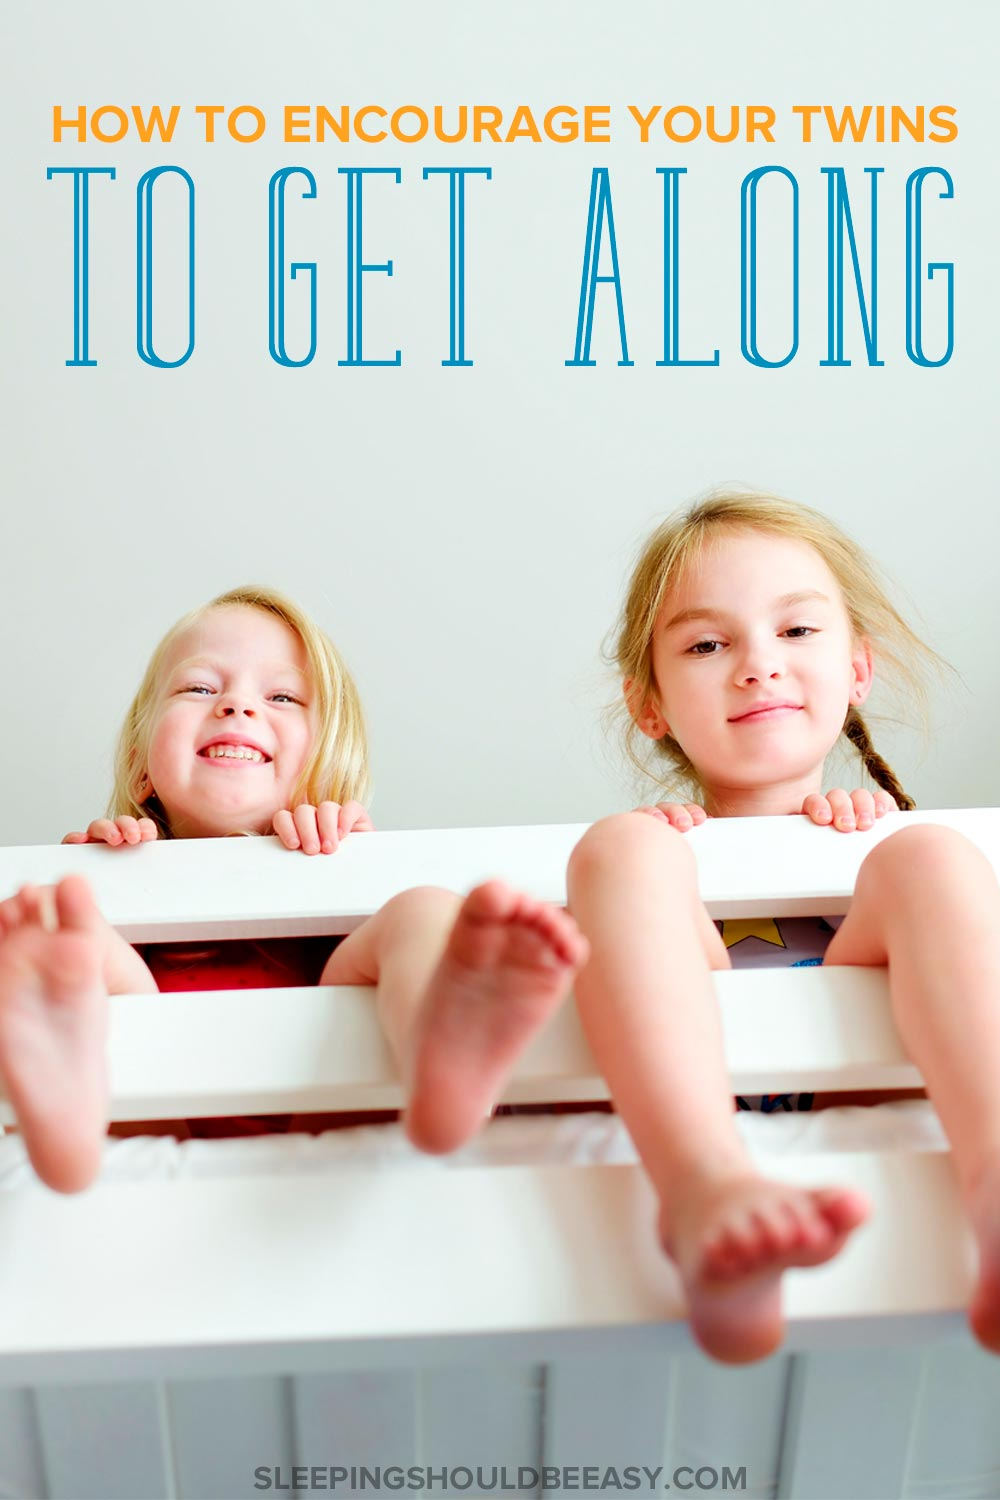 Twin girls sitting on a bunk bed